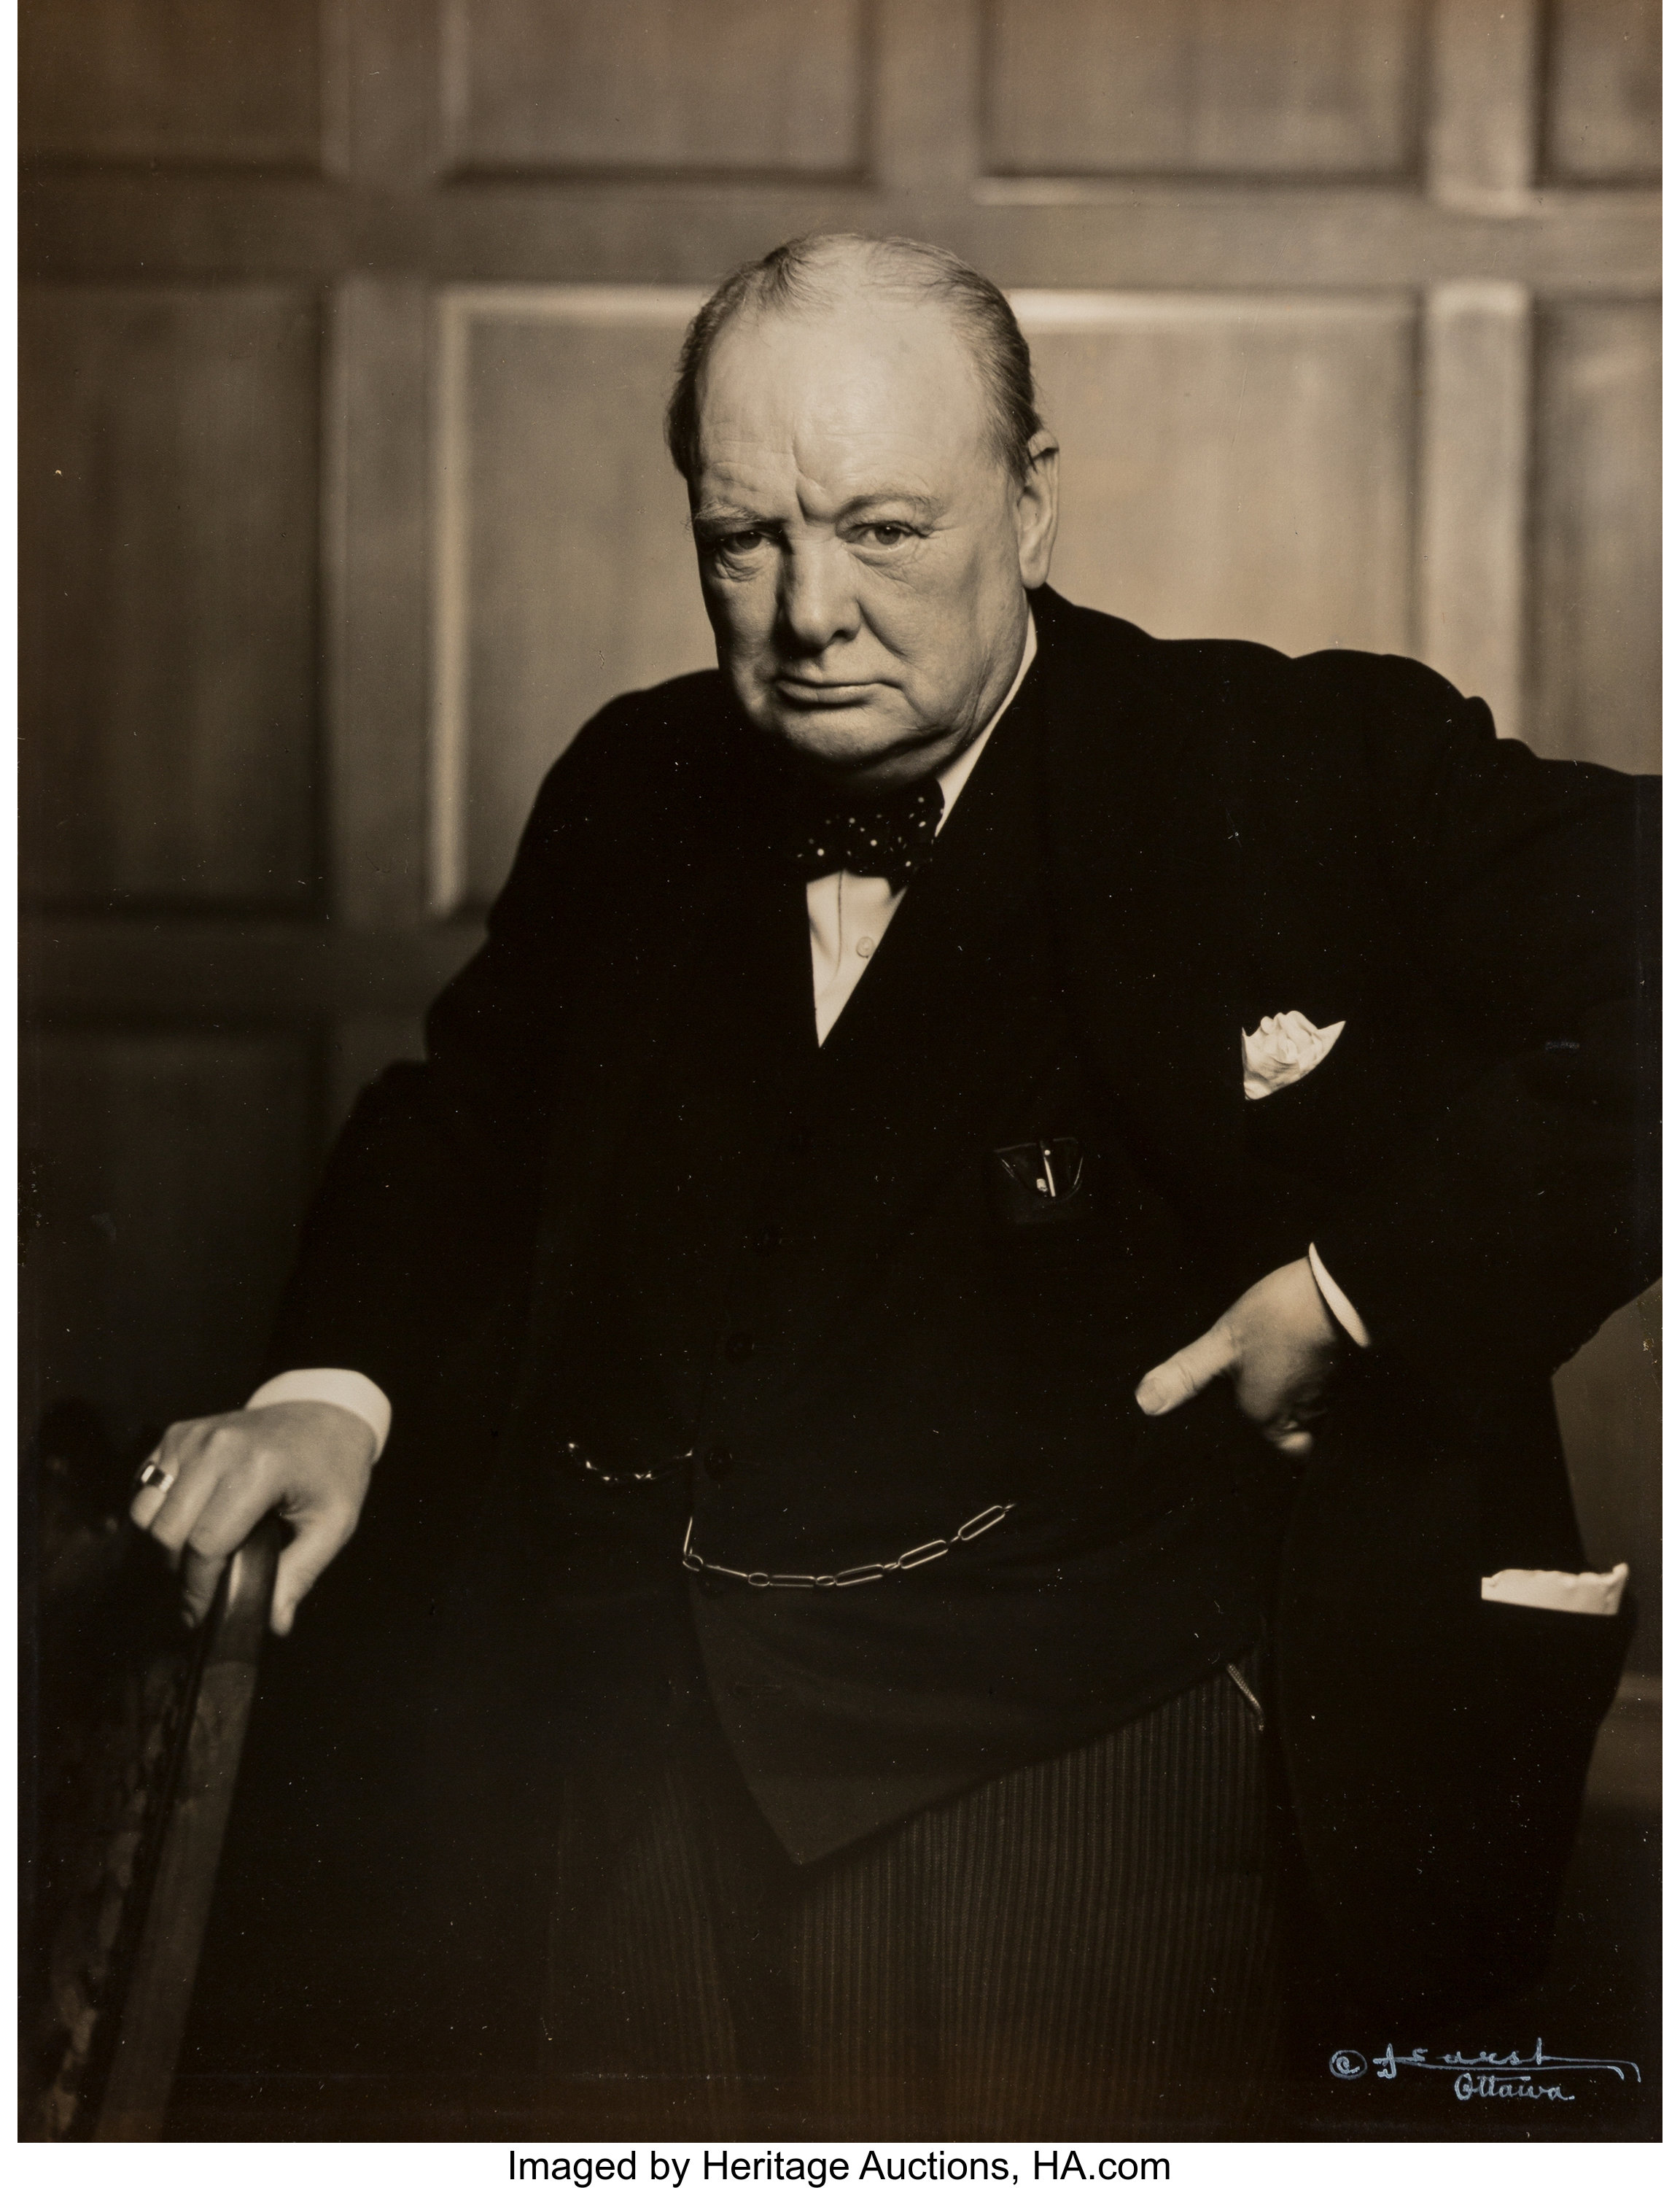 Yousuf Karsh's famous black and white 1941 portrait of Winston Churchill shows the British prime minister scowling directly at the camera, with one hand on his waist and the other resting on the head of a cane. It is the scowl to end all scowls, designed to reduce offenders to a gibbering mess.